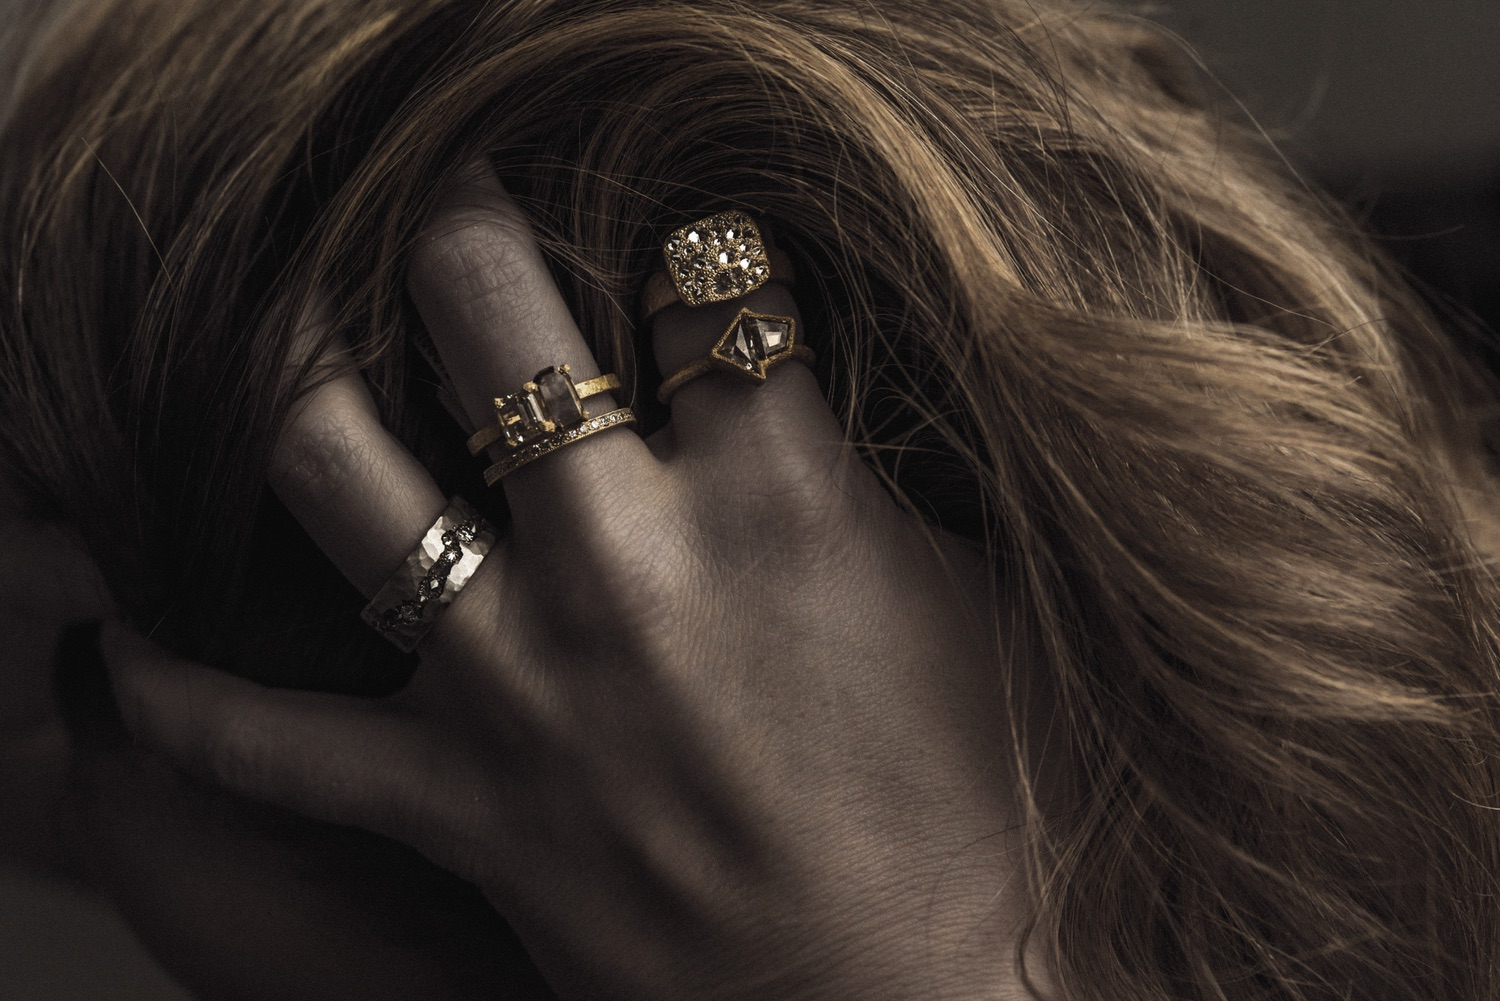 The Jewel - Todd Pownell Tap - Lookbook - Gold and Silver Rings on Model's Han